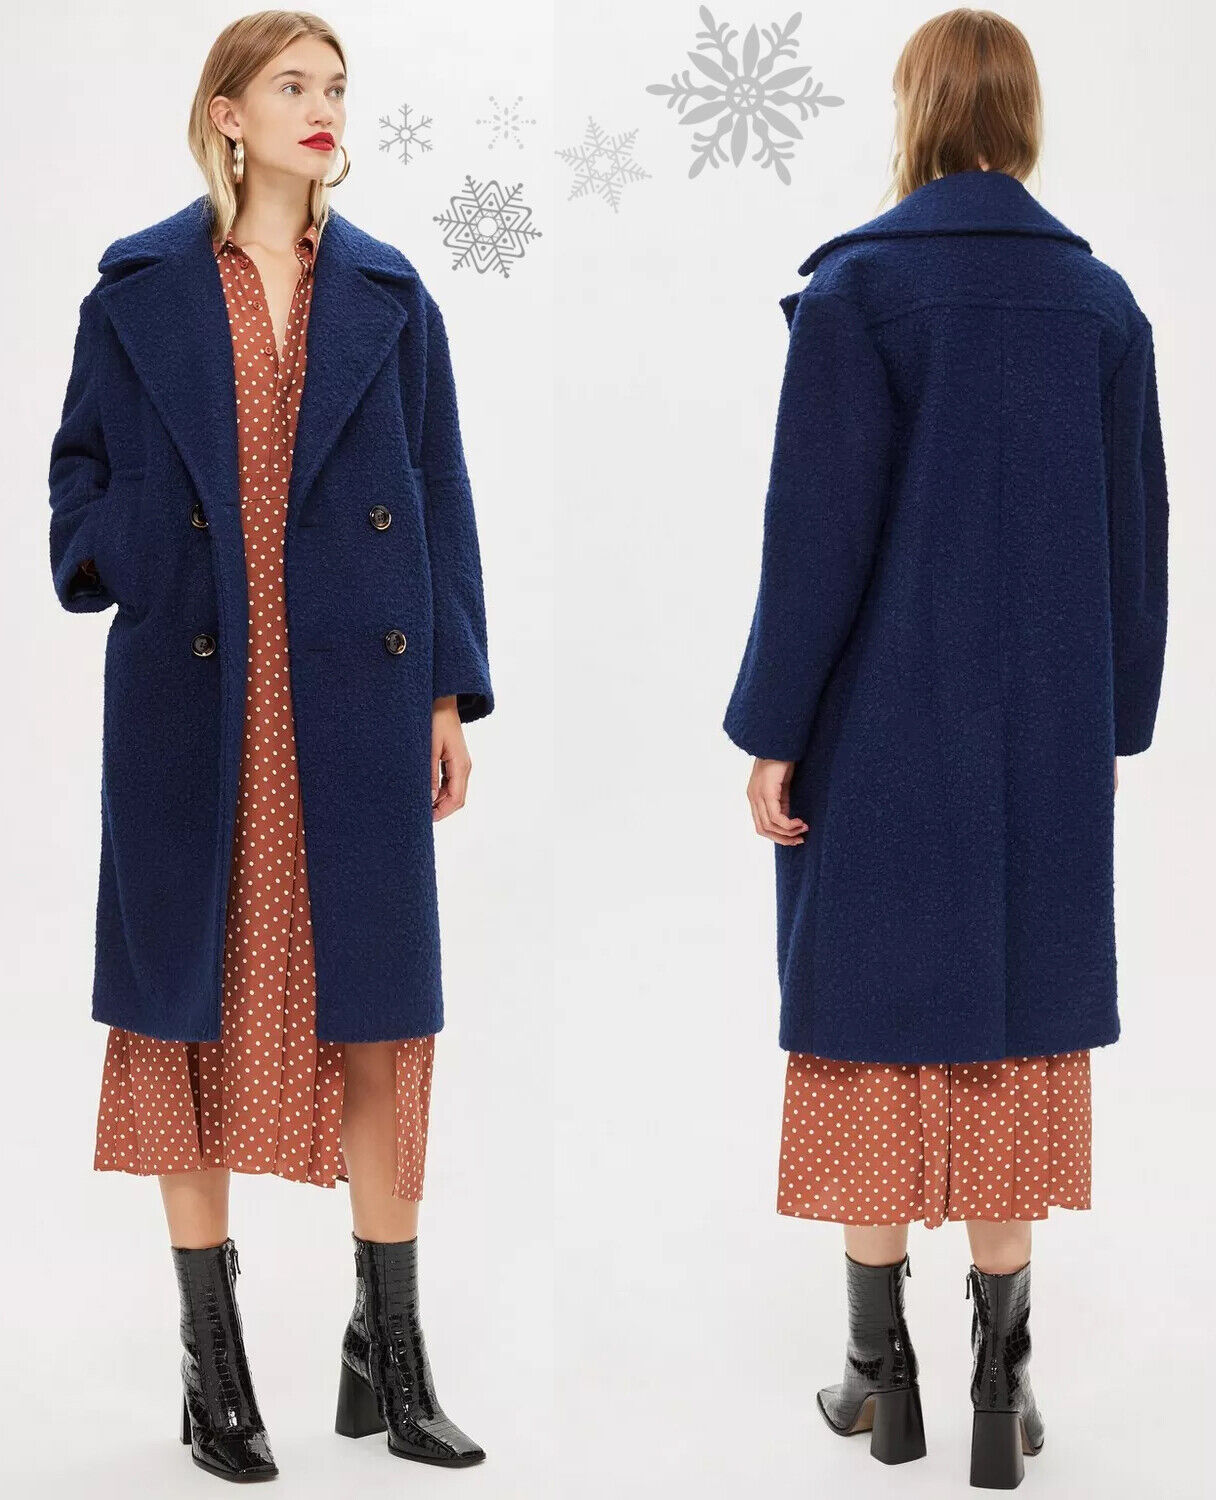 Details about OASIS Lily Double Breasted Warm Coat Winter Jacket in Navy